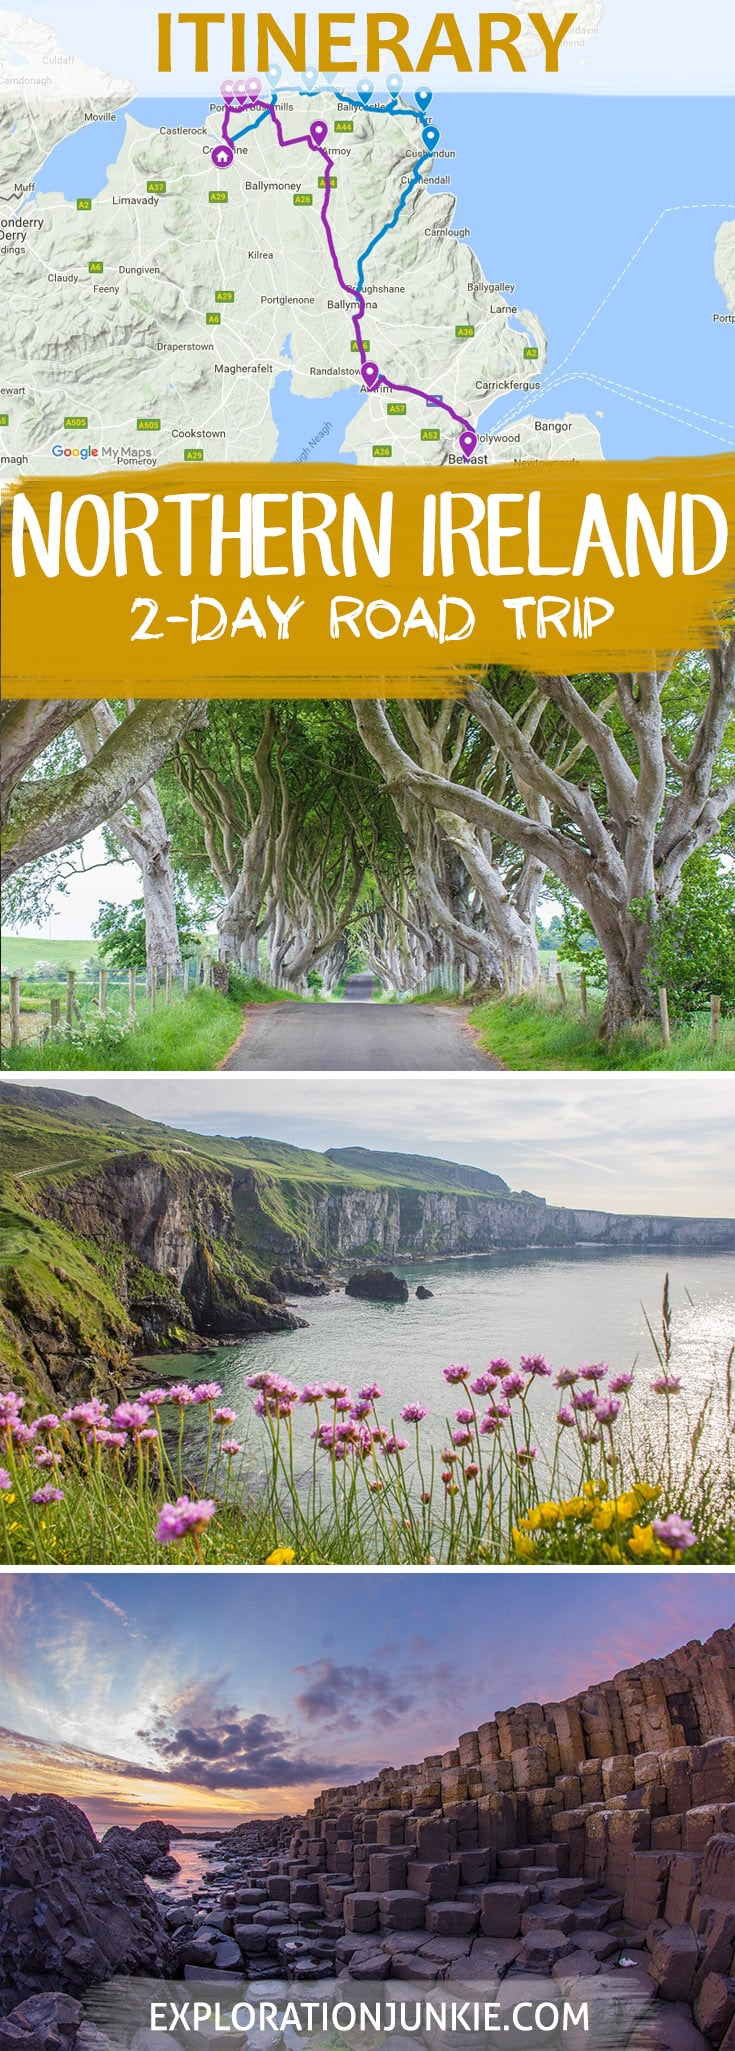 Northern Ireland Itinerary